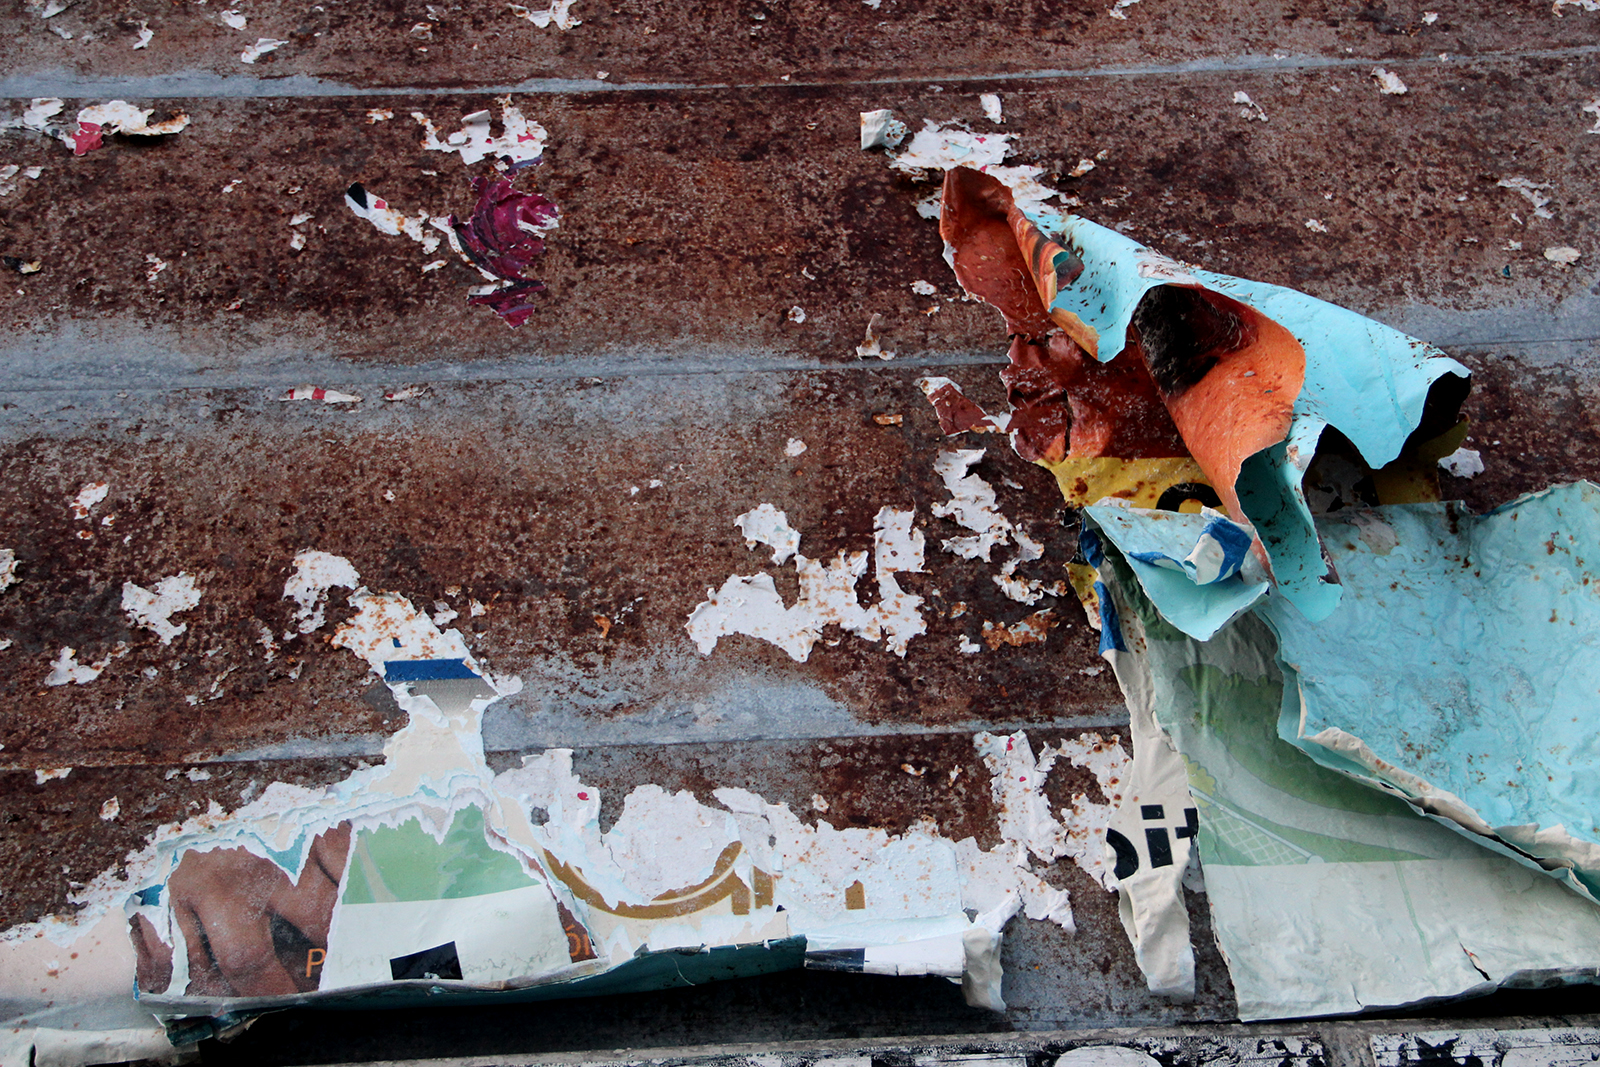 A ripped sign remains on a board, with clues of what used to be.